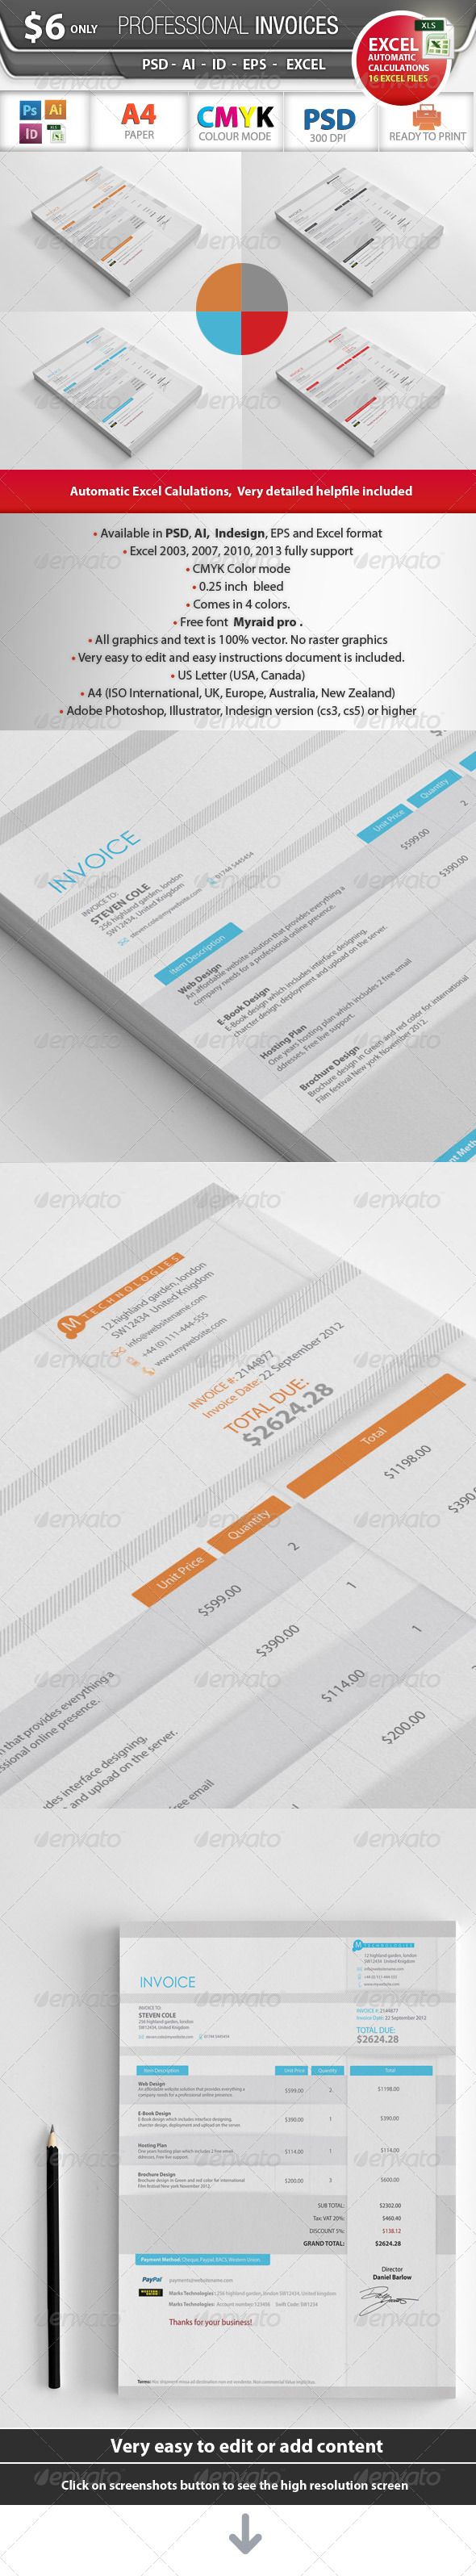 Professional Invoices - Proposals & Invoices Stationery